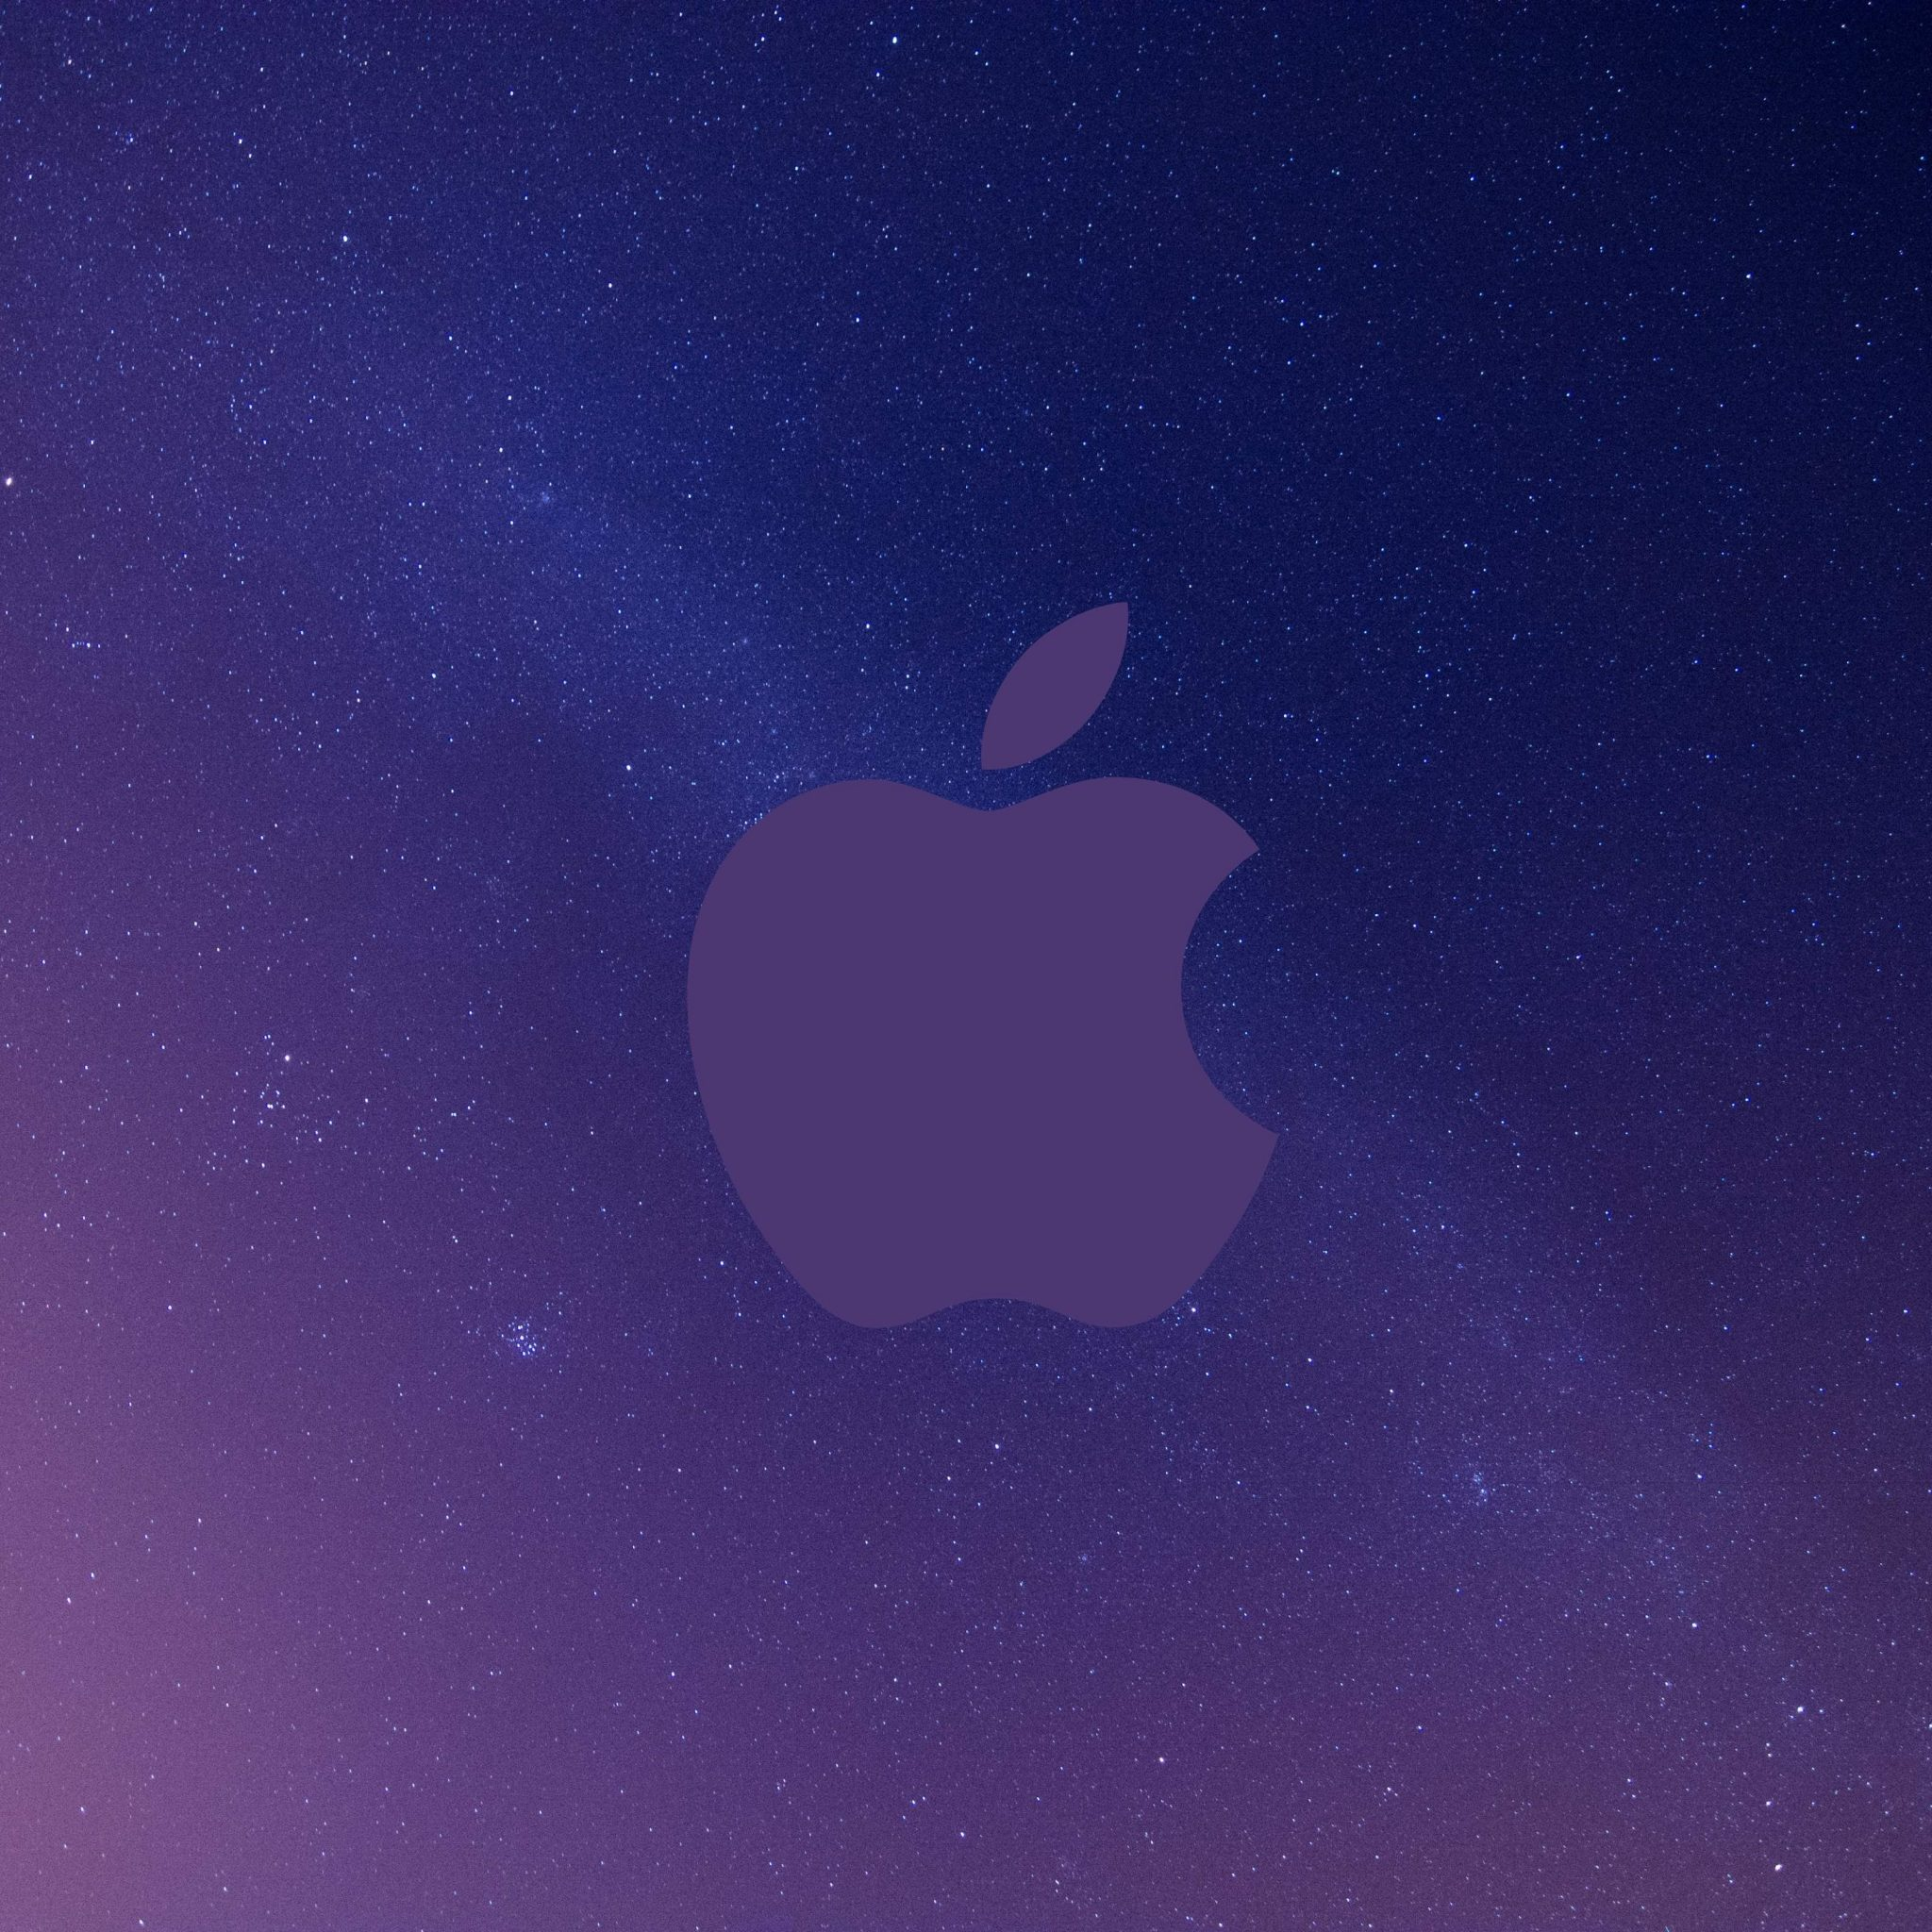 2048x2048 wallpapers iPad retina Apple Logo Grey Sky Night Stars Space iPad Wallpaper 2048x2048 pixels resolution